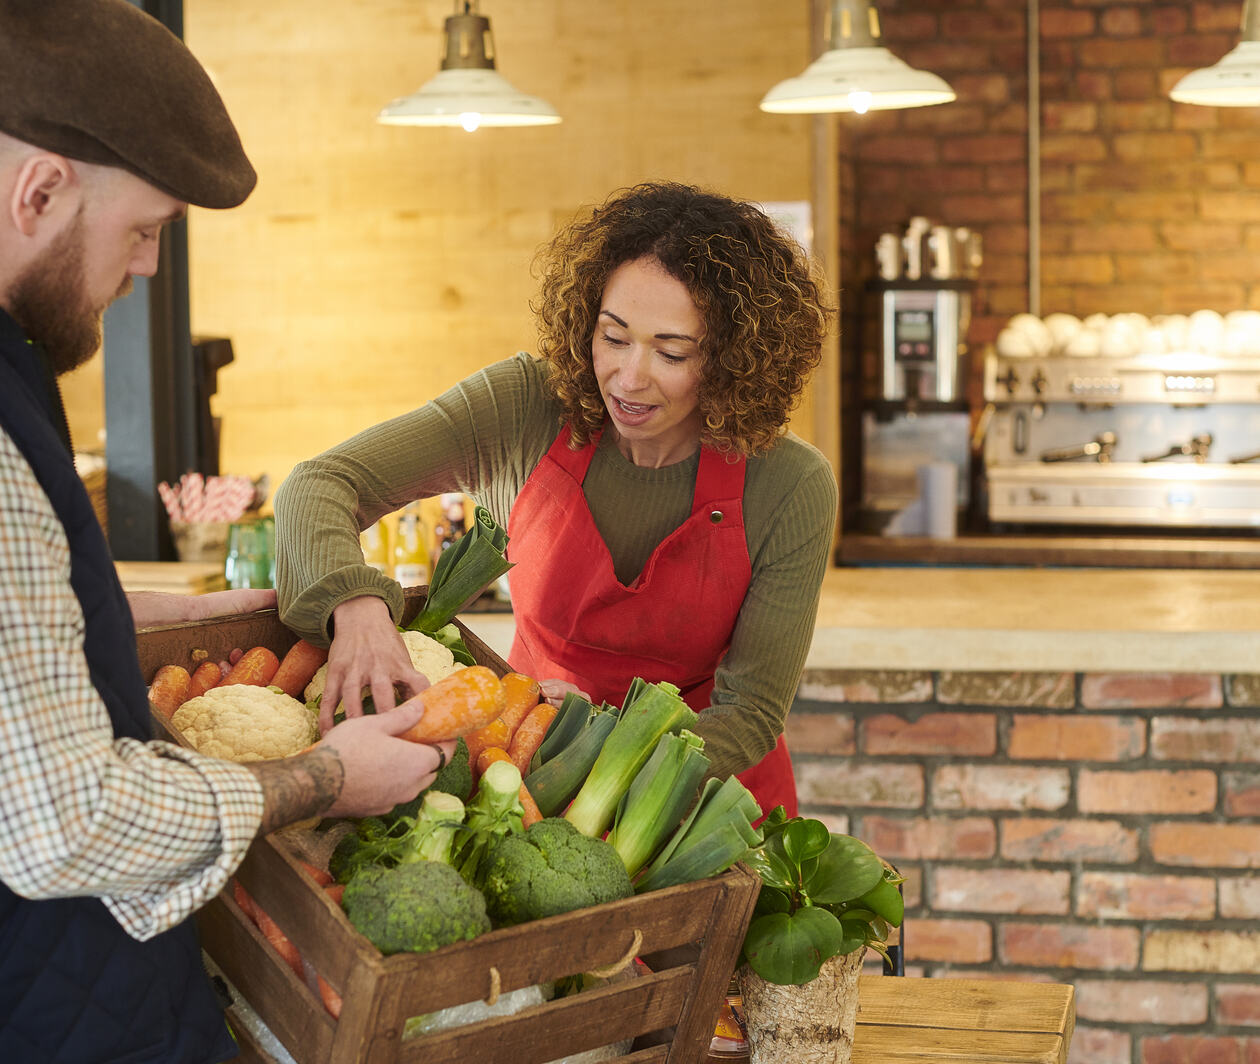 Introduction to Sustainable Practices in Food Service